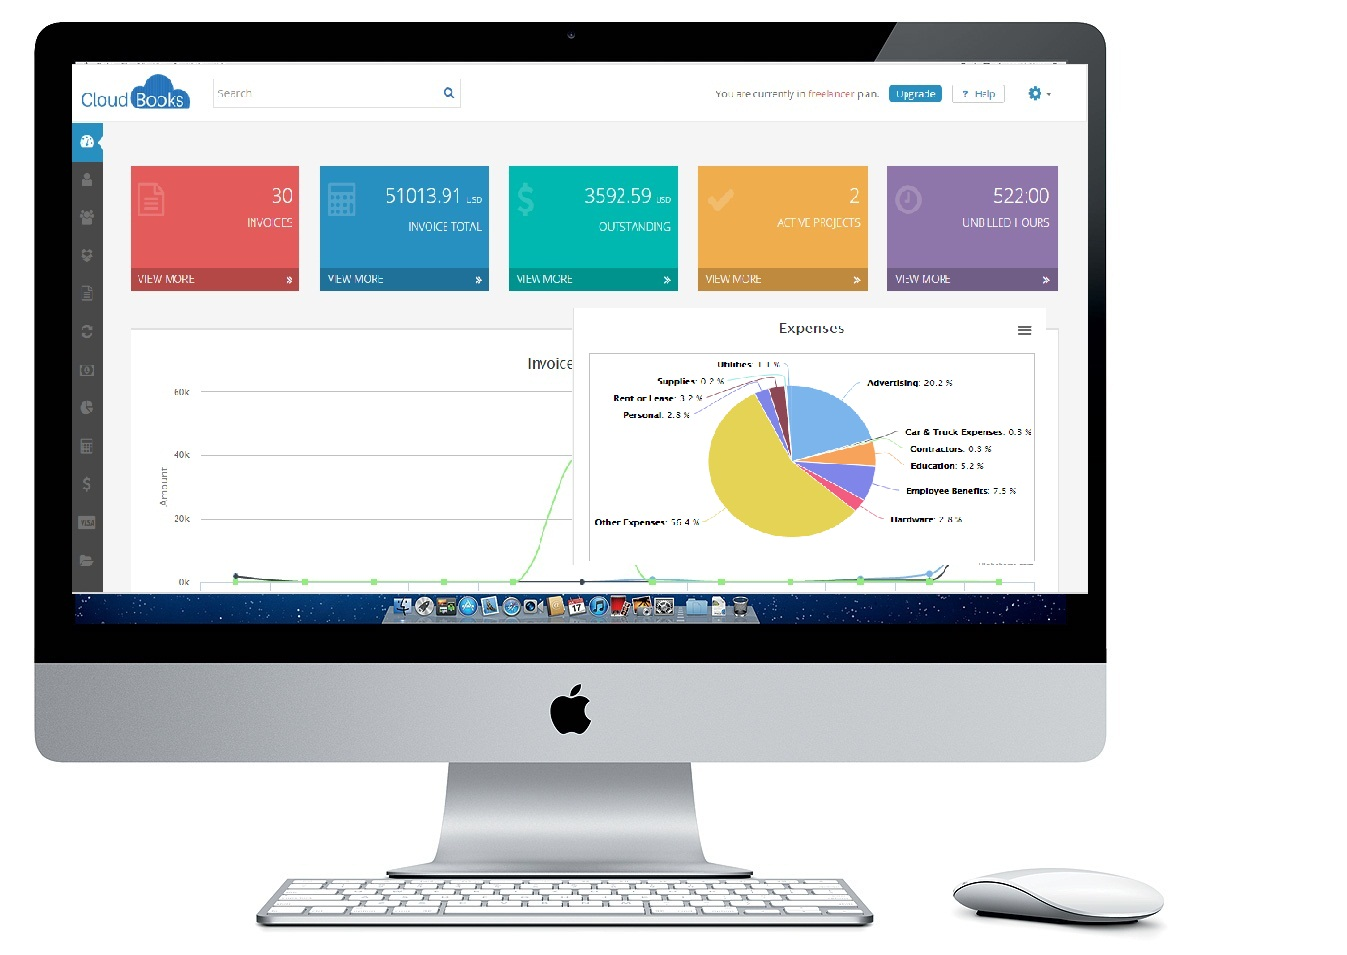 Invoice Management Software Invoice Management System For Small - Invoice management software